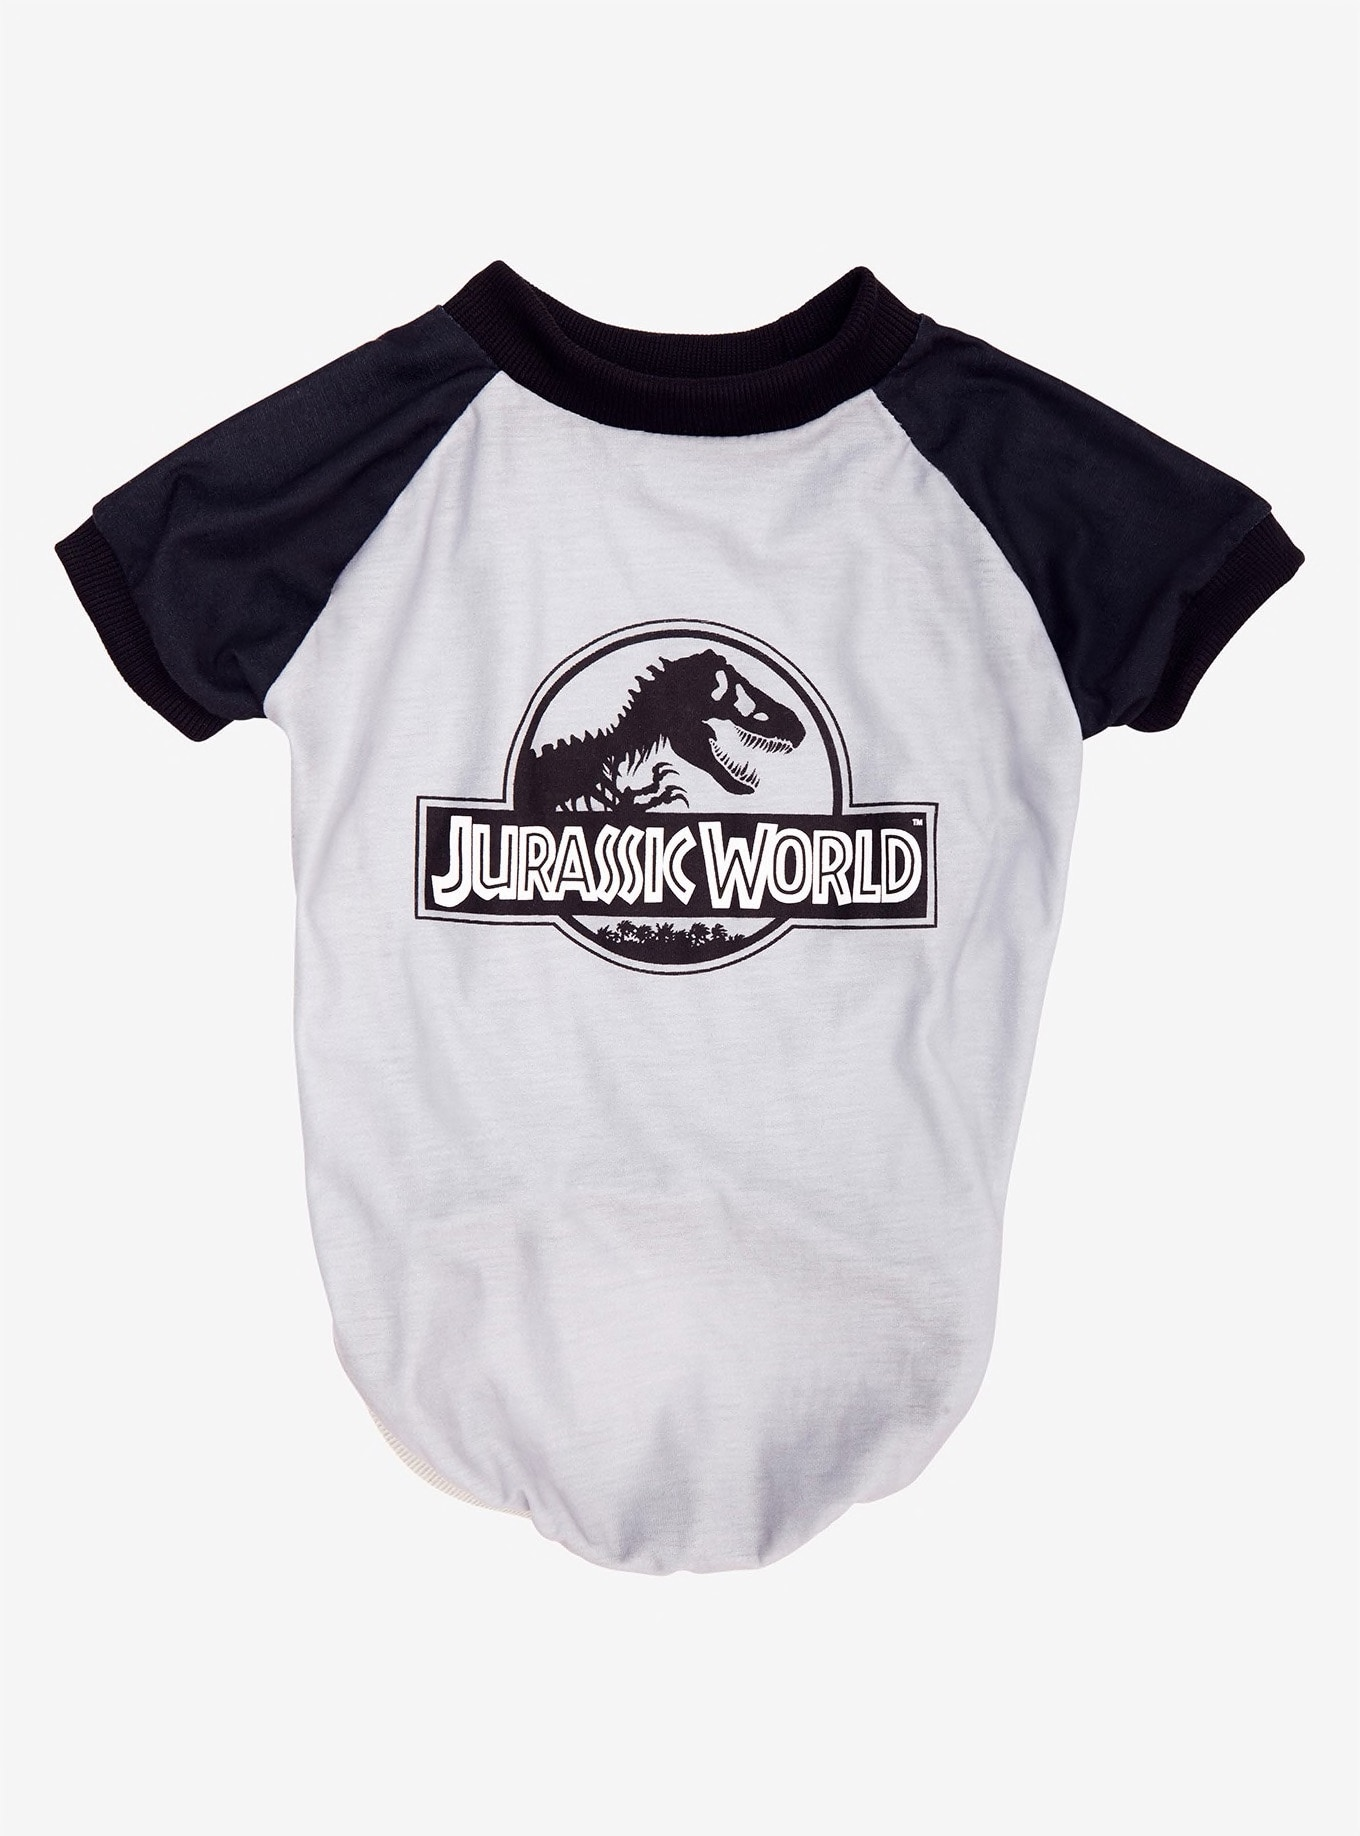 Jurassic World Pet Tee - Exclusive: BoxLunch's JURASSIC WORLD Collection for Humans and Pets